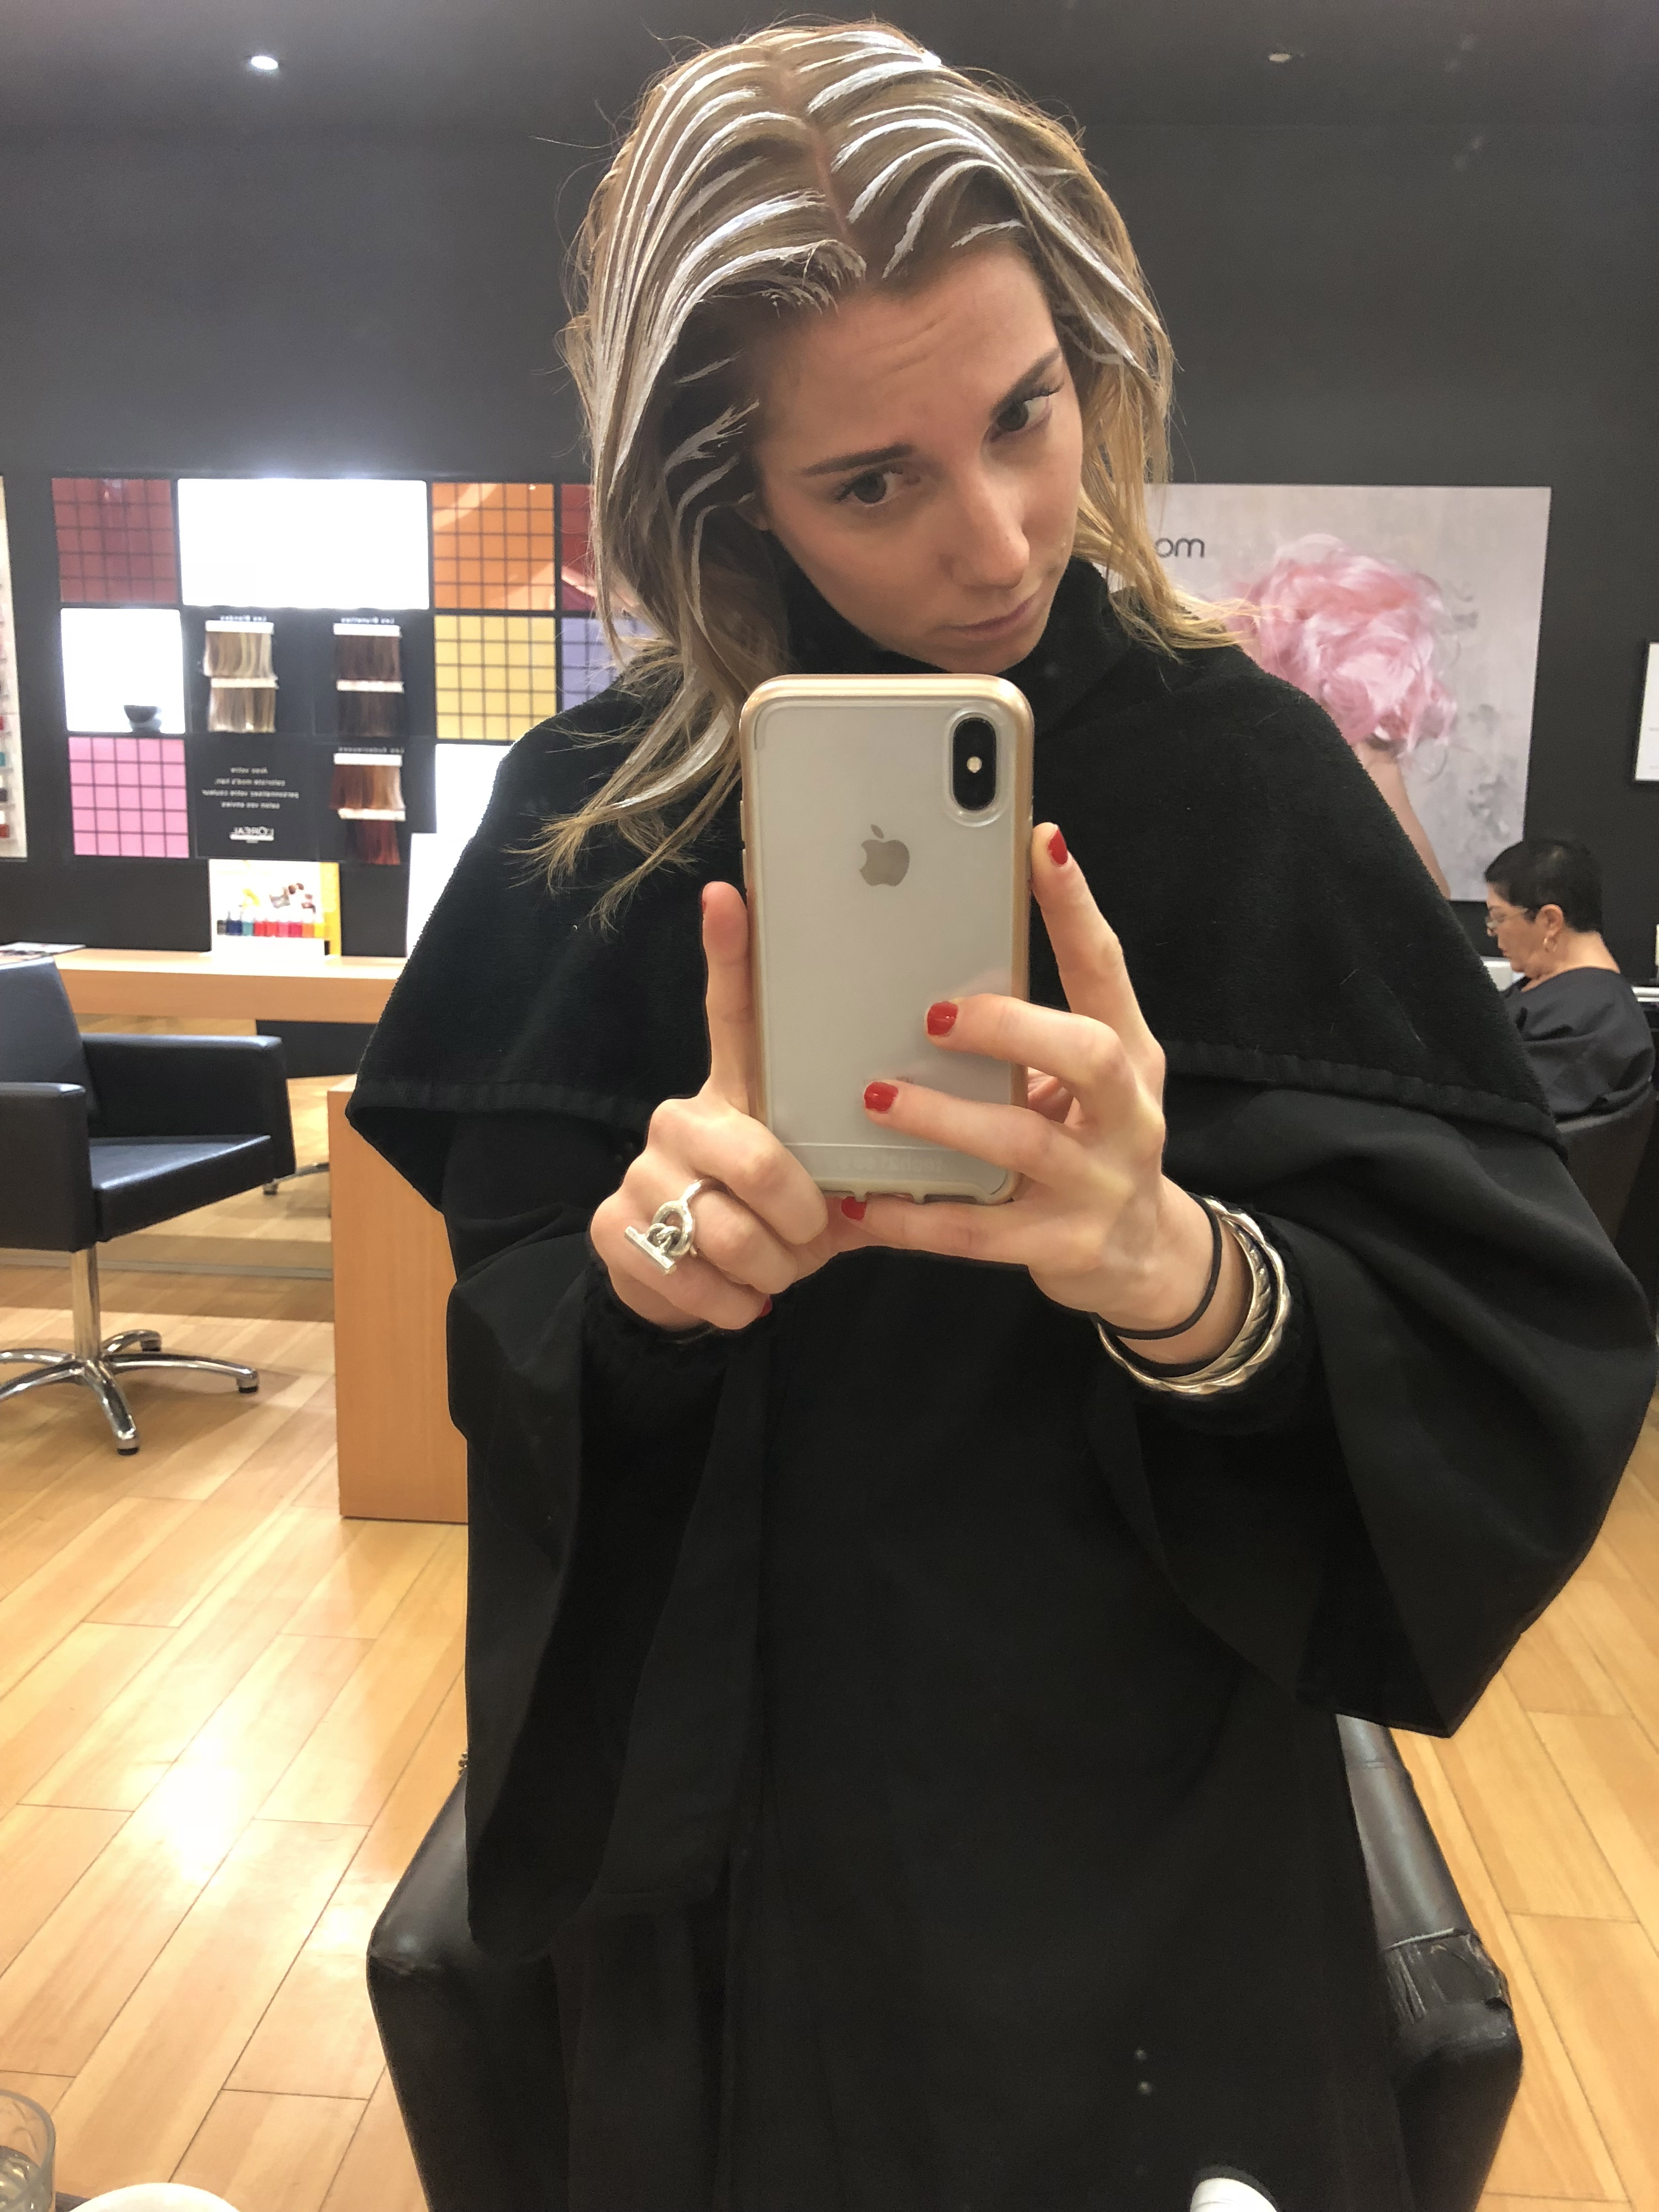 coiffure, mod's hair, couleur, balayage, blond, blonde, mèche, mèches, mèche blonde, balayage blond, décoloration